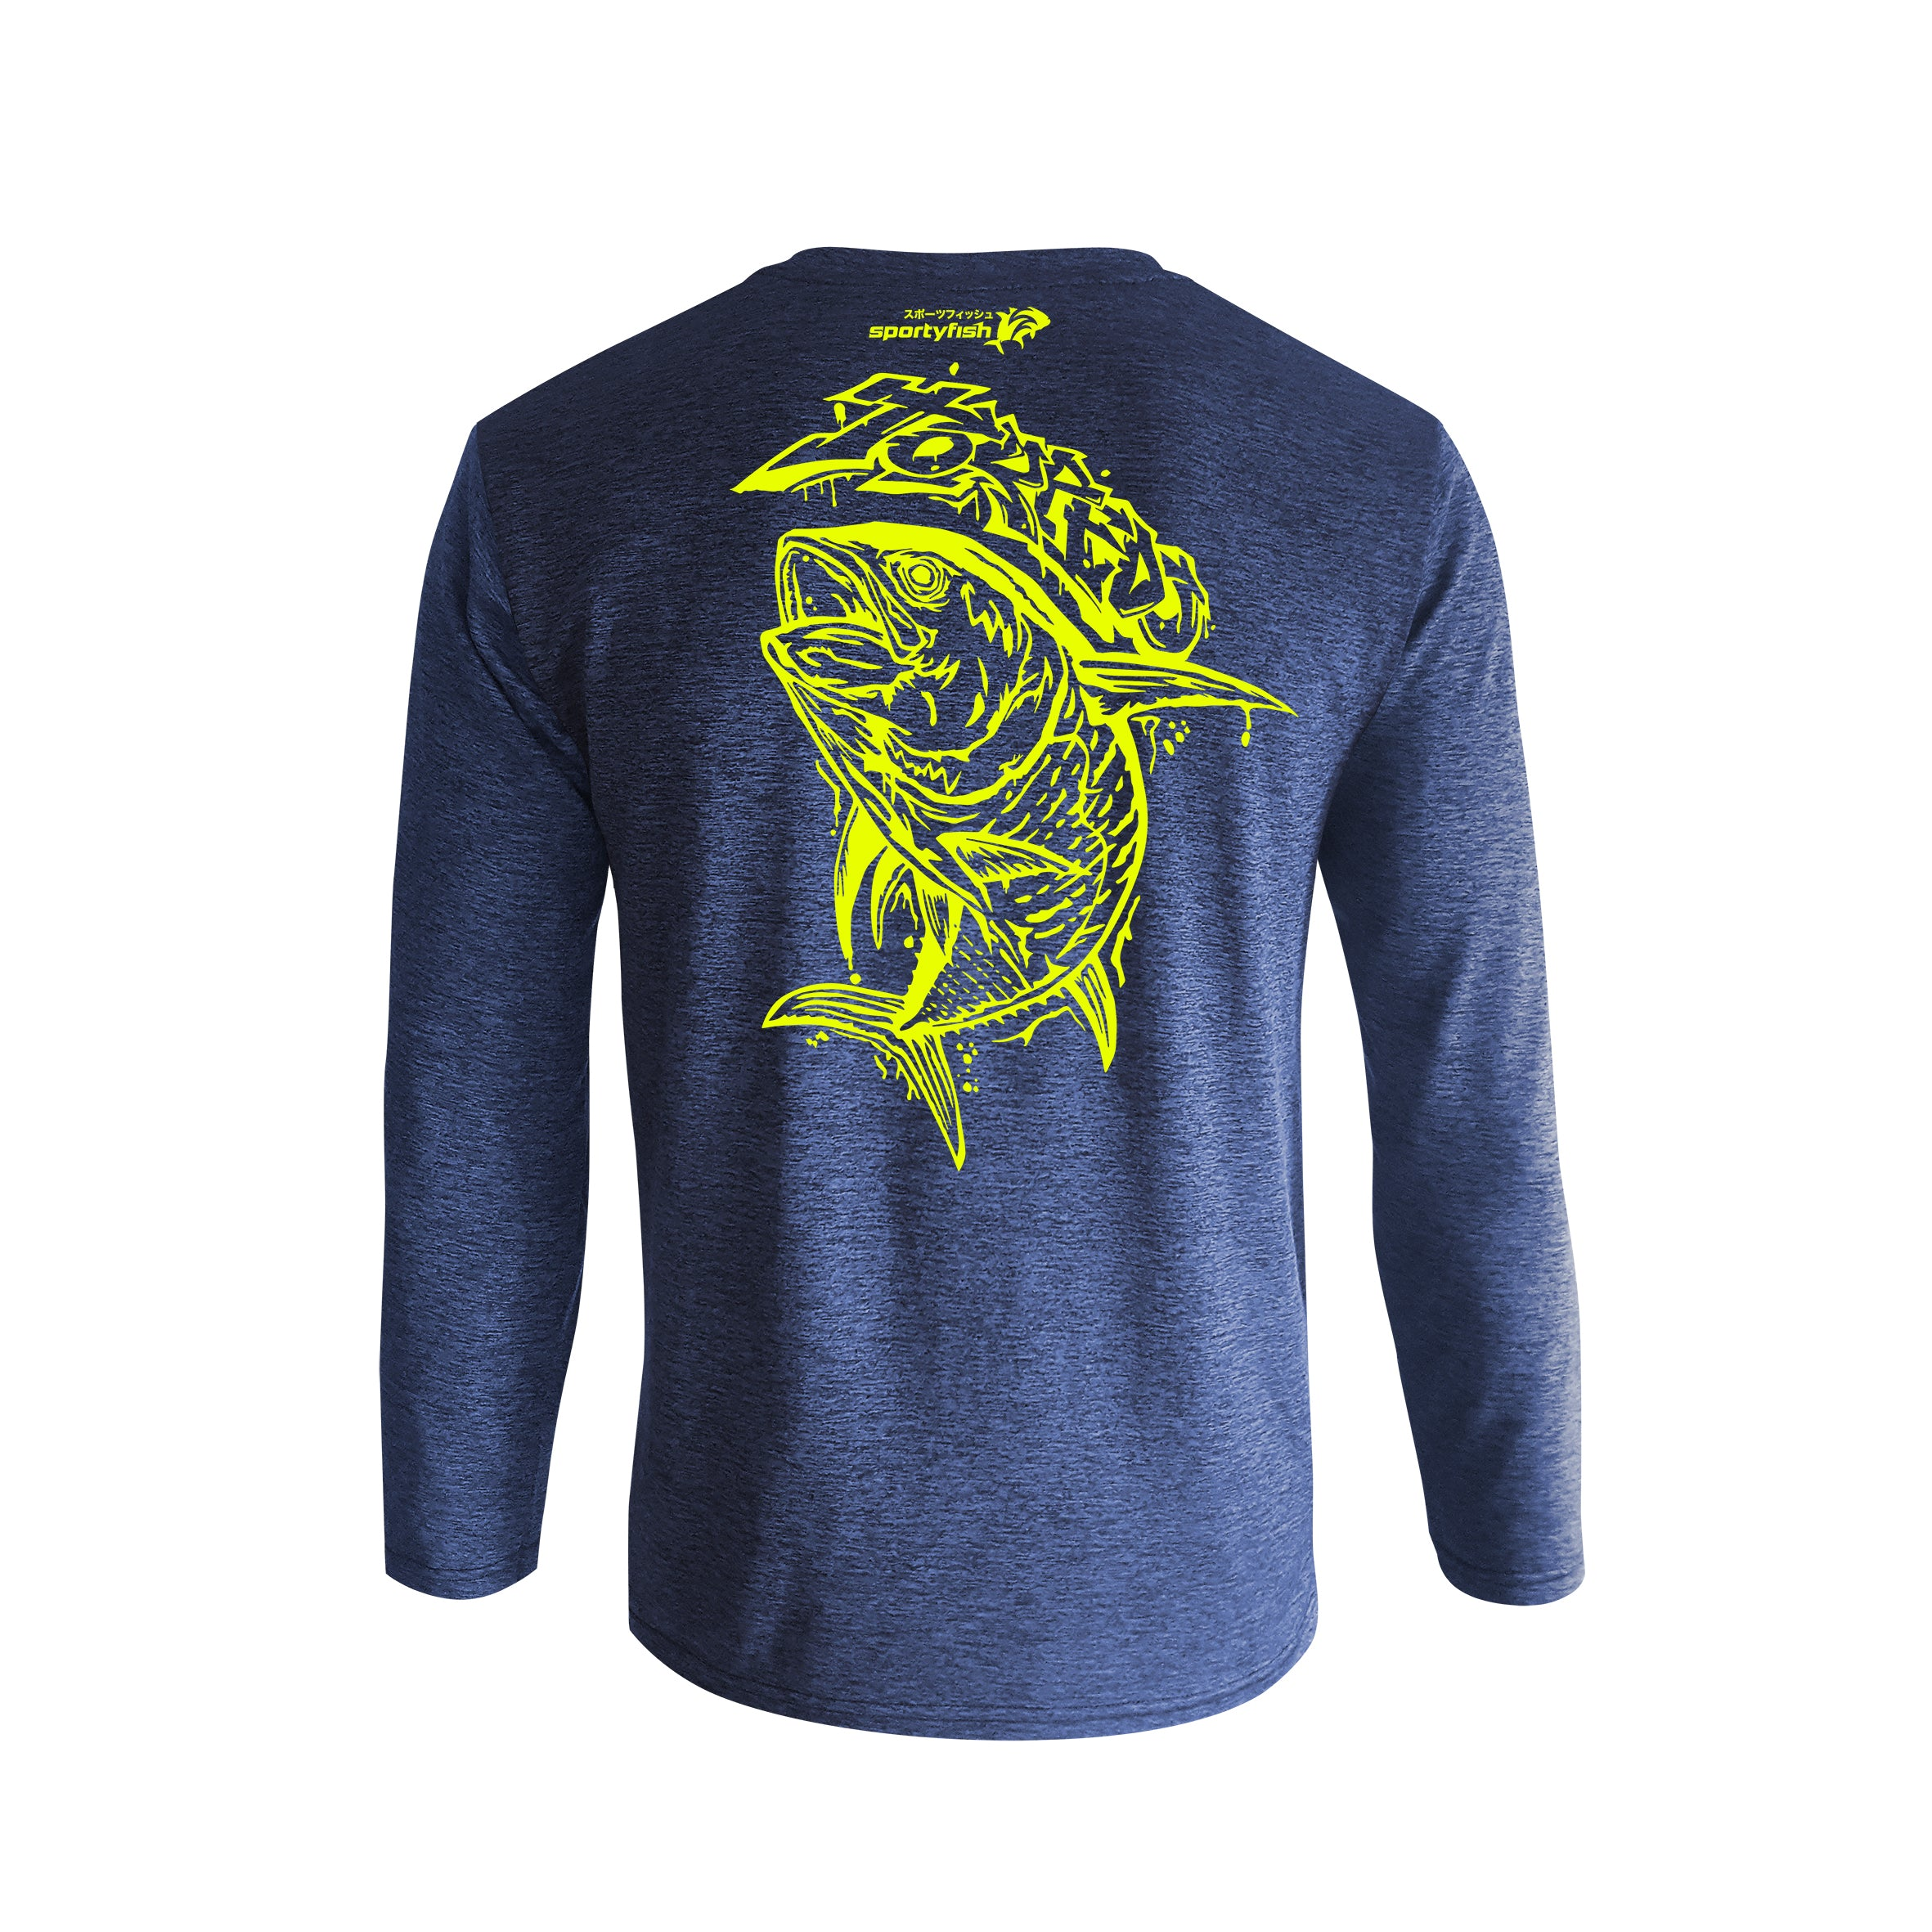 Wildstyle Graffiti Series Blue Long-sleeves T-shirt(back view)Neon Yellow: Yellowfin Tuna